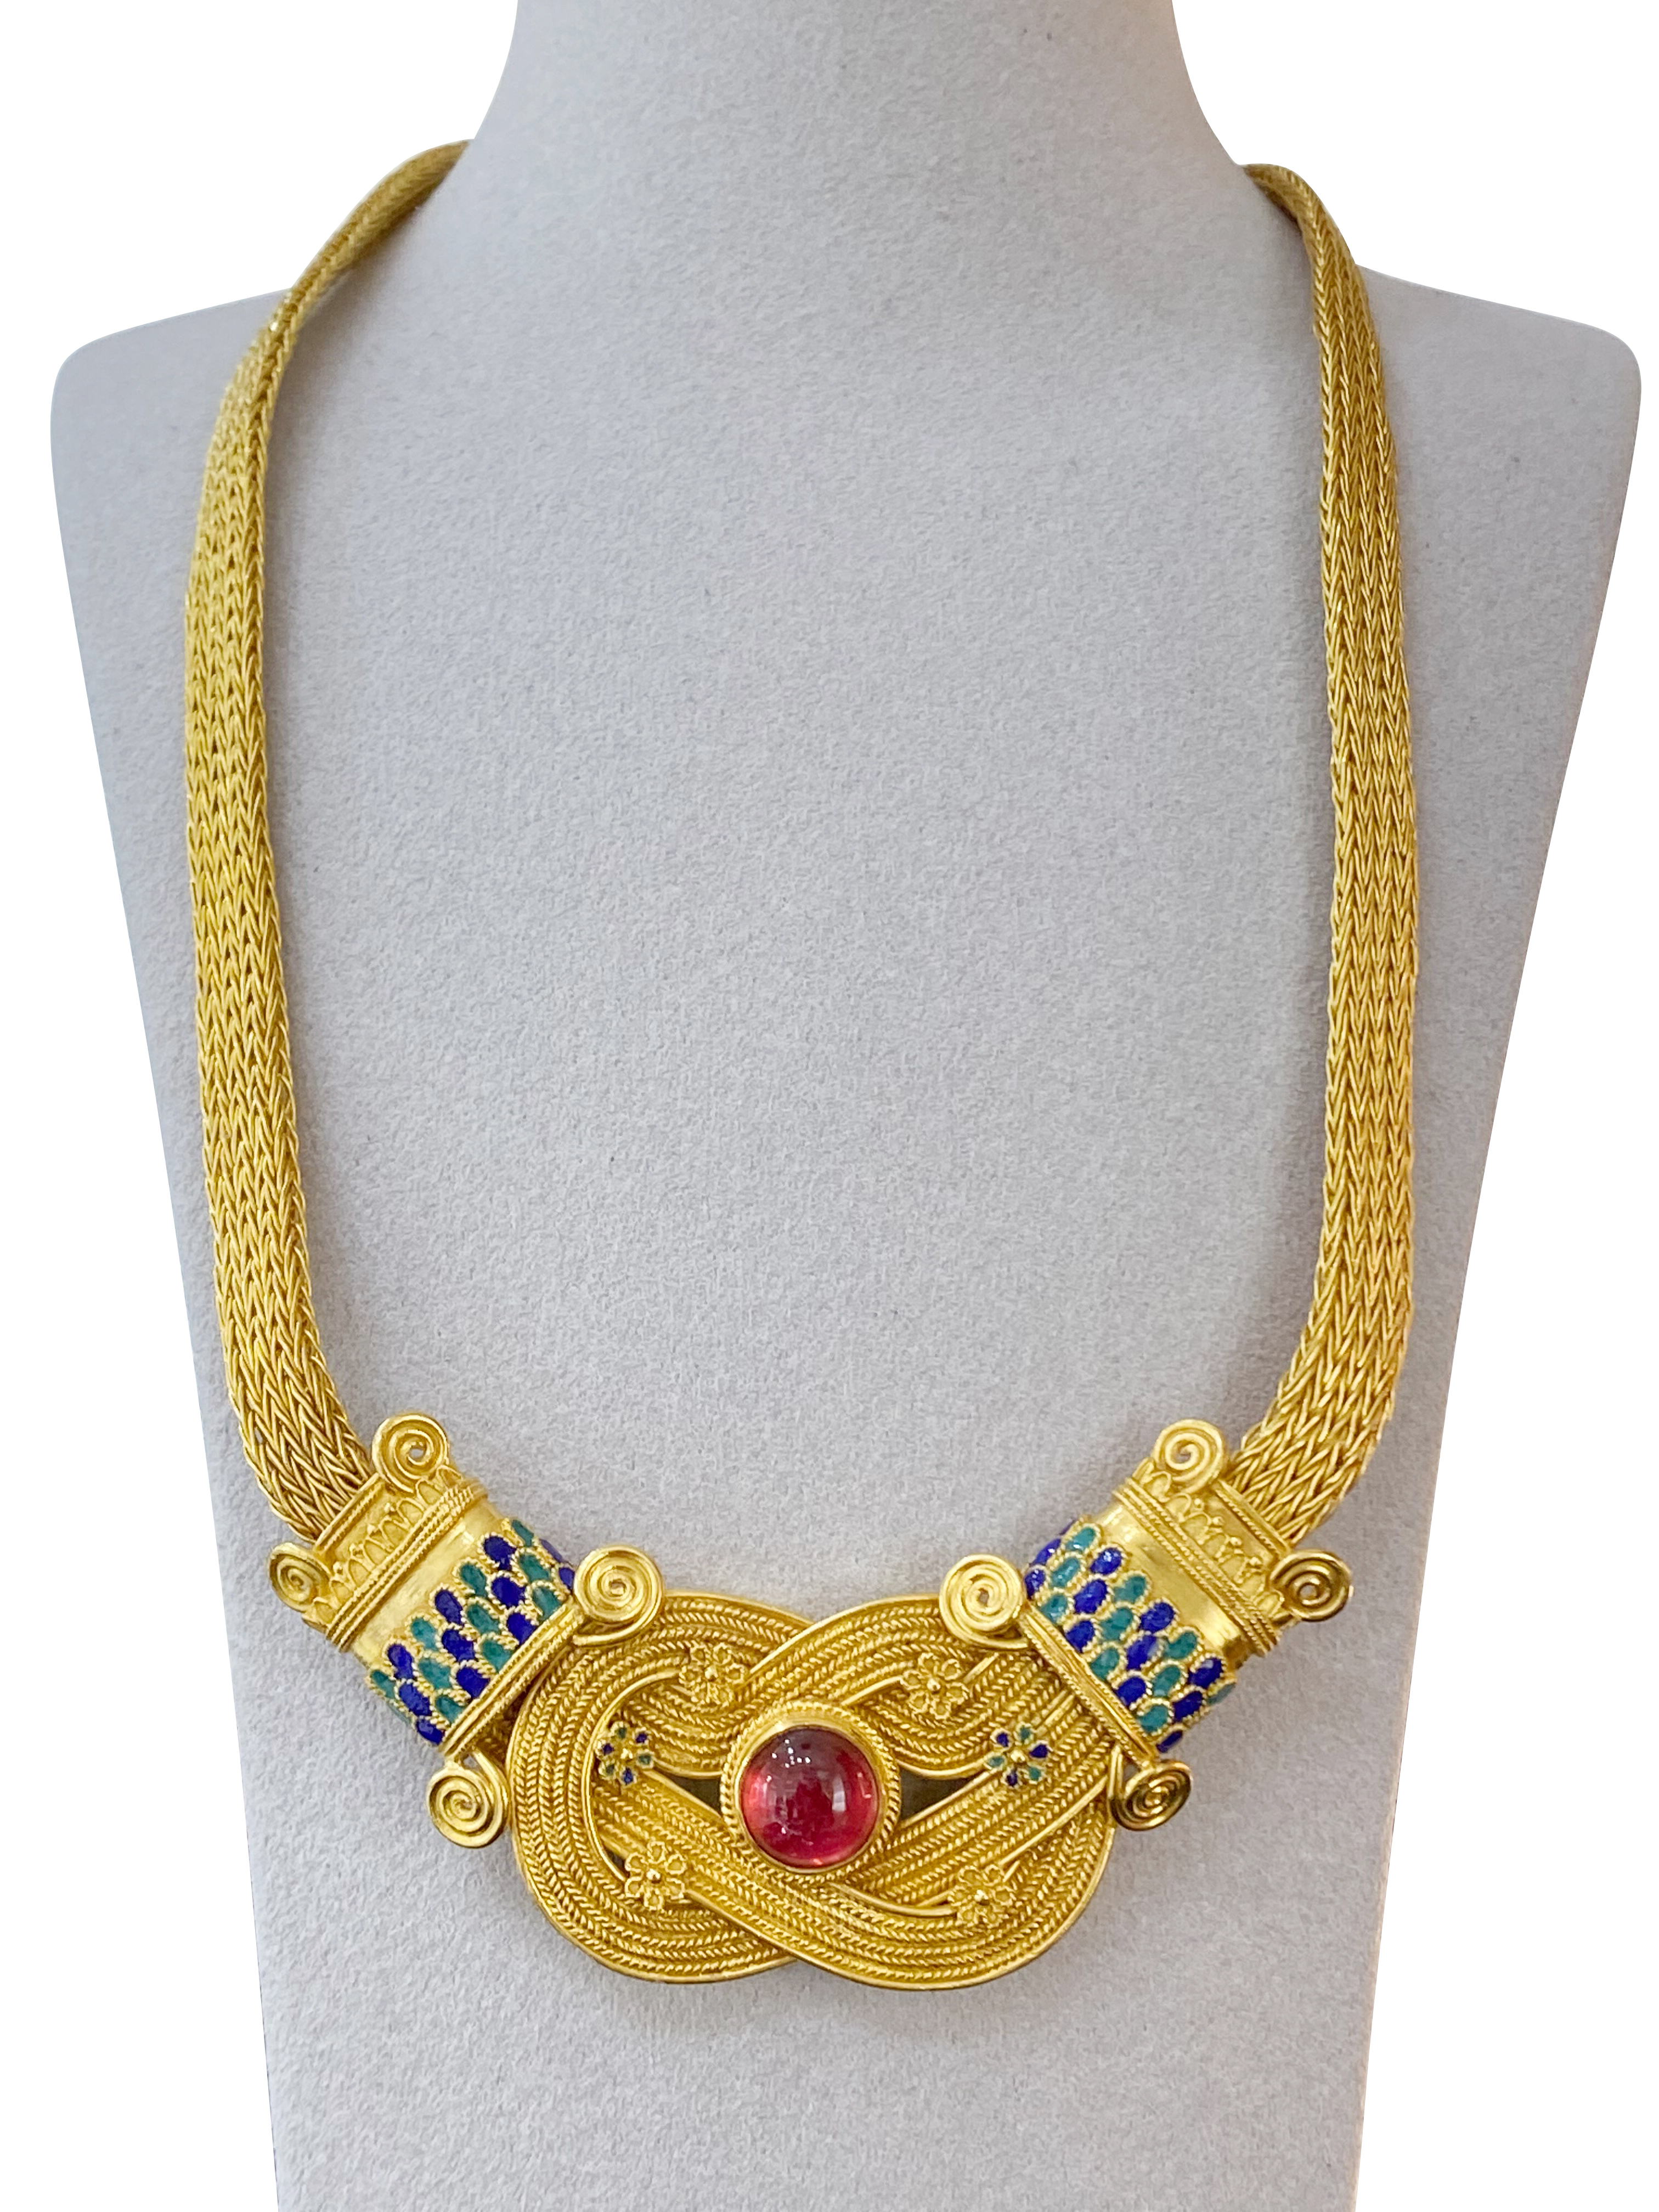 A 22K gold Ancient Greek Mycenaean style necklace with royal blue and green enamel with 4ct garnet - Image 2 of 2